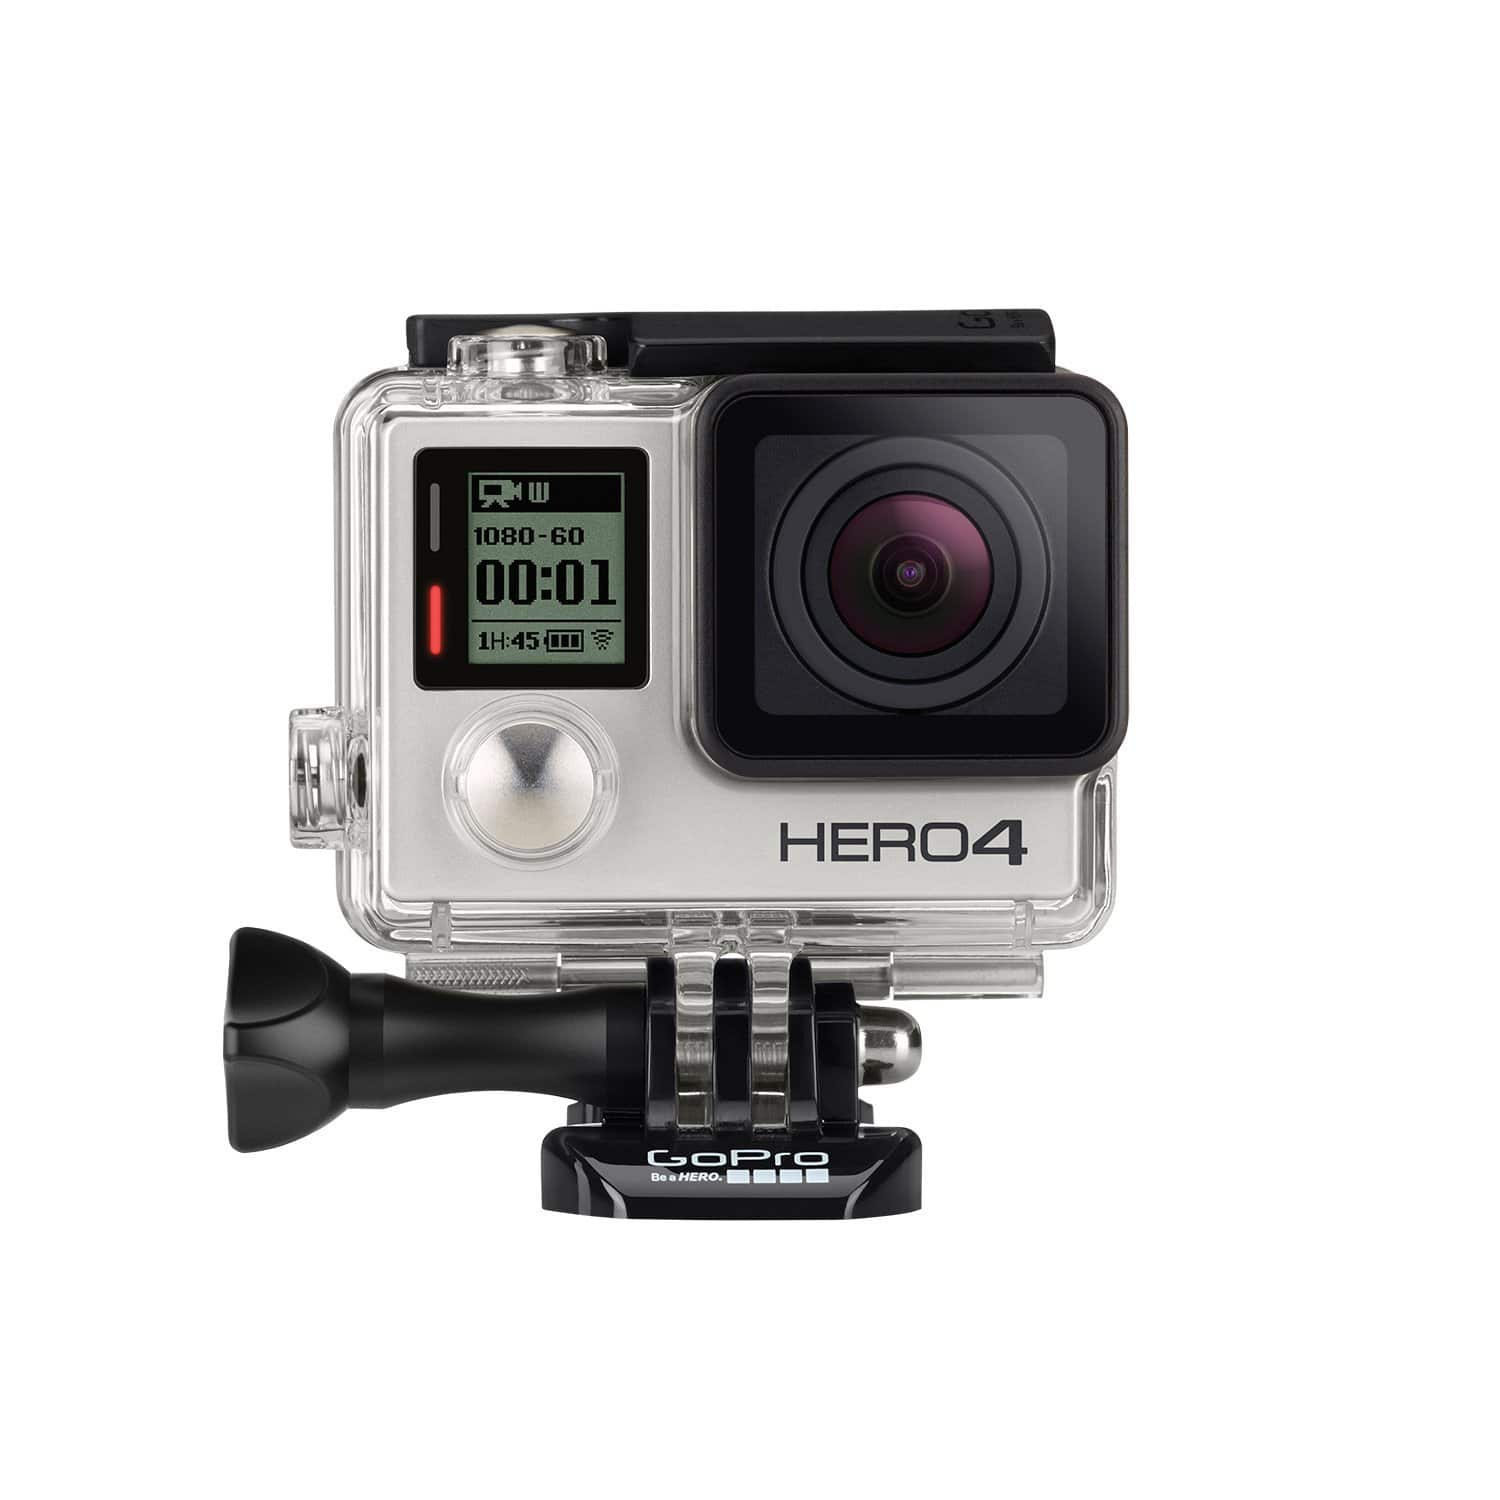 Camera Costco Dslr Camera Deals gopro hero4 silver extra battery dual charger sandisk 16gb microsd 250